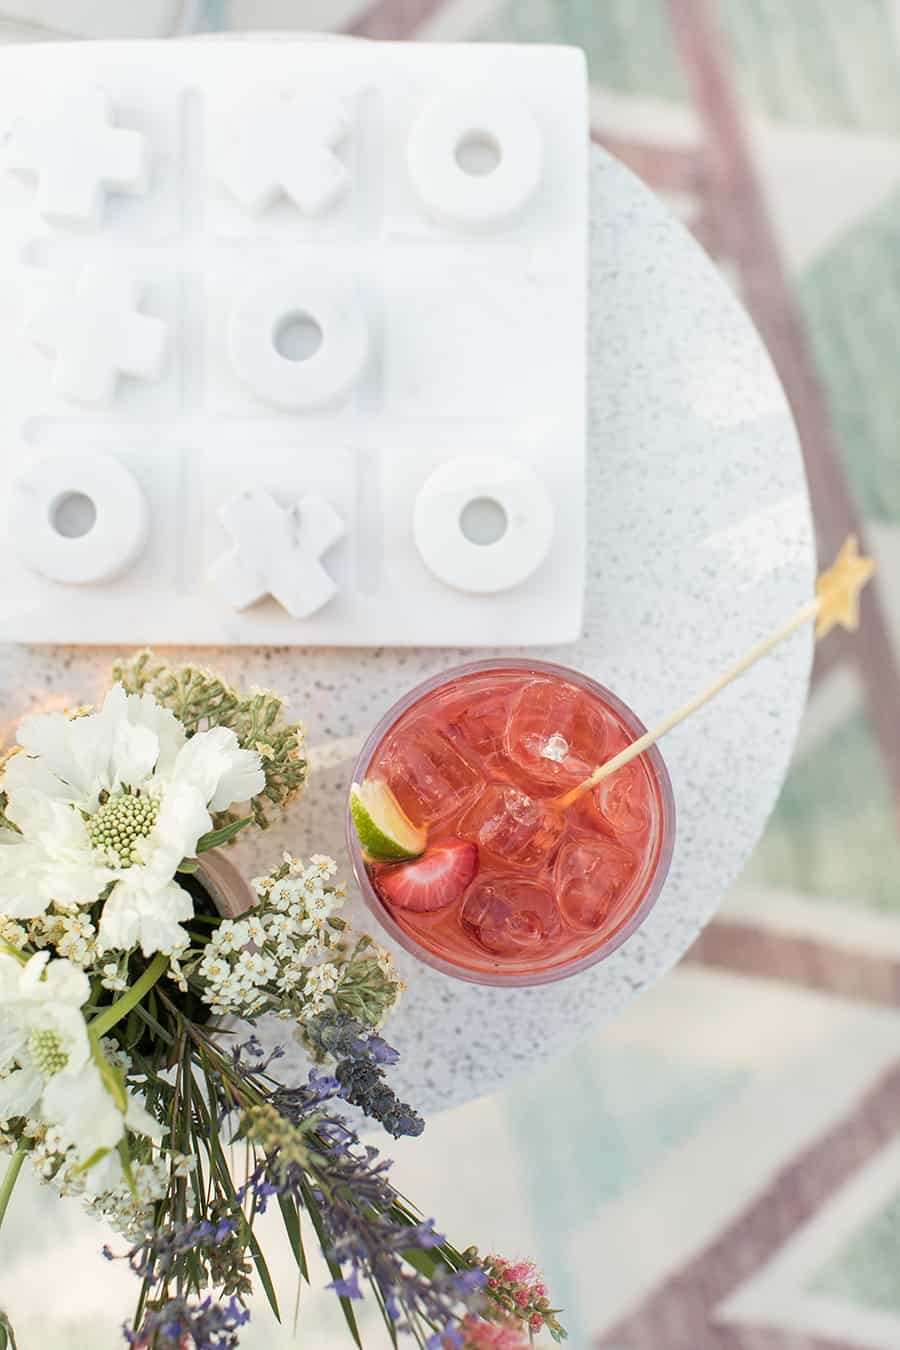 red cocktail on a table with flowers and a tic-tac-toe board.